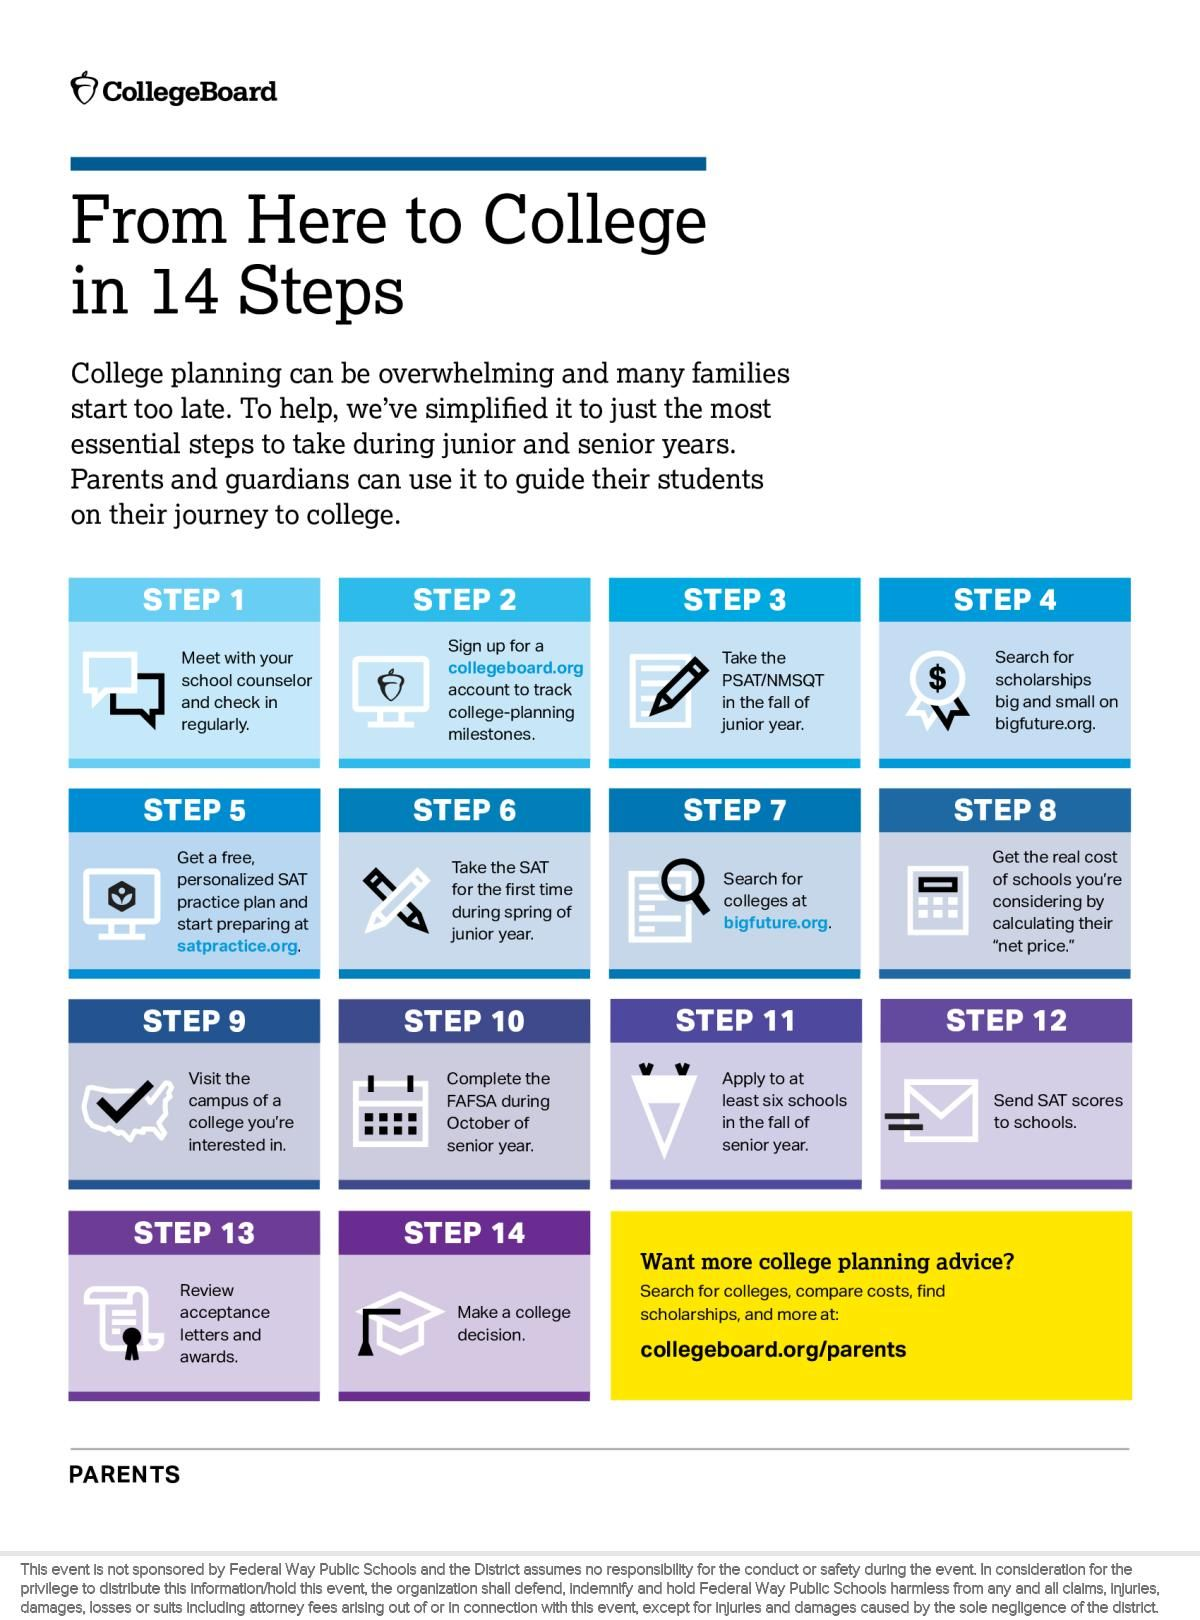 Free resource for parents to keep teens on track for college